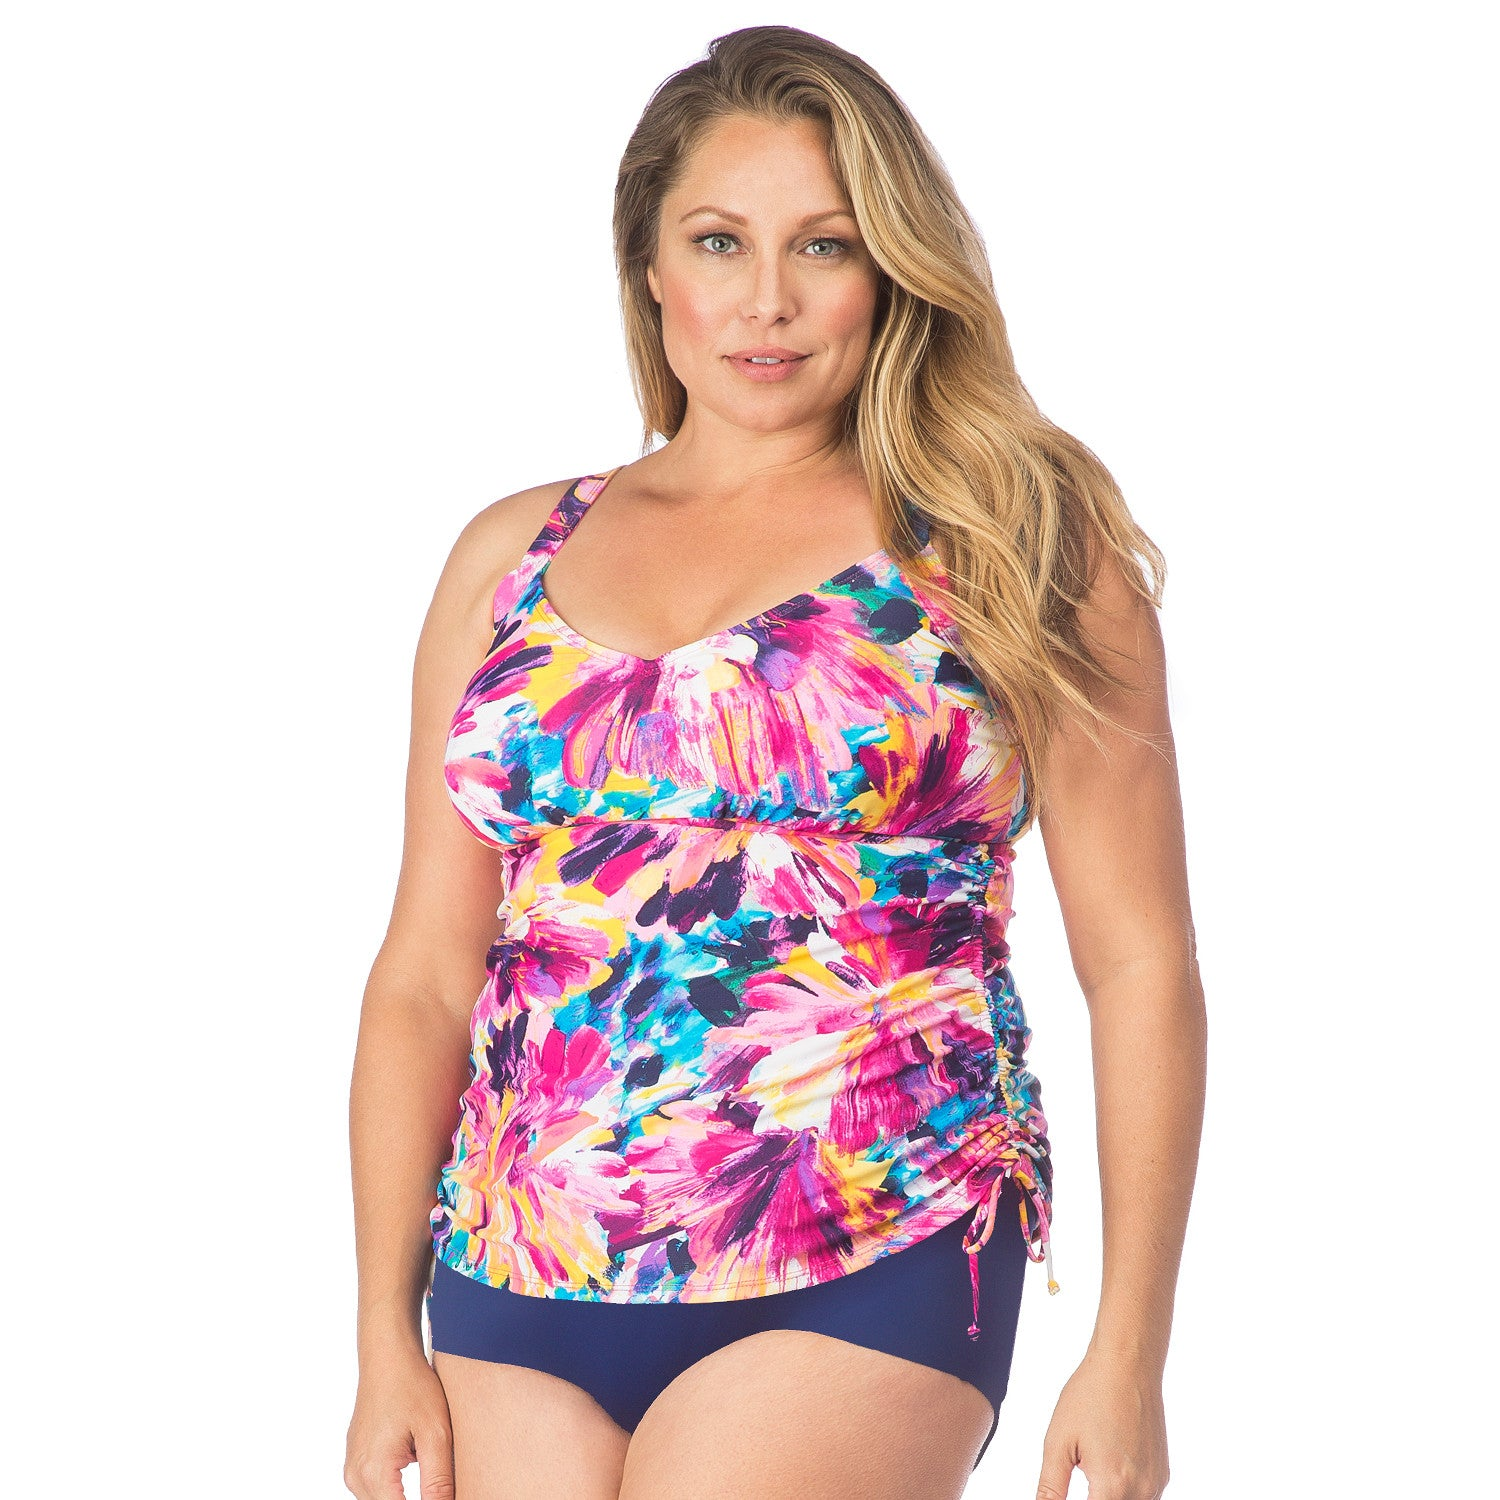 mix & match separates, swim tops & swim bottoms in plus sizes